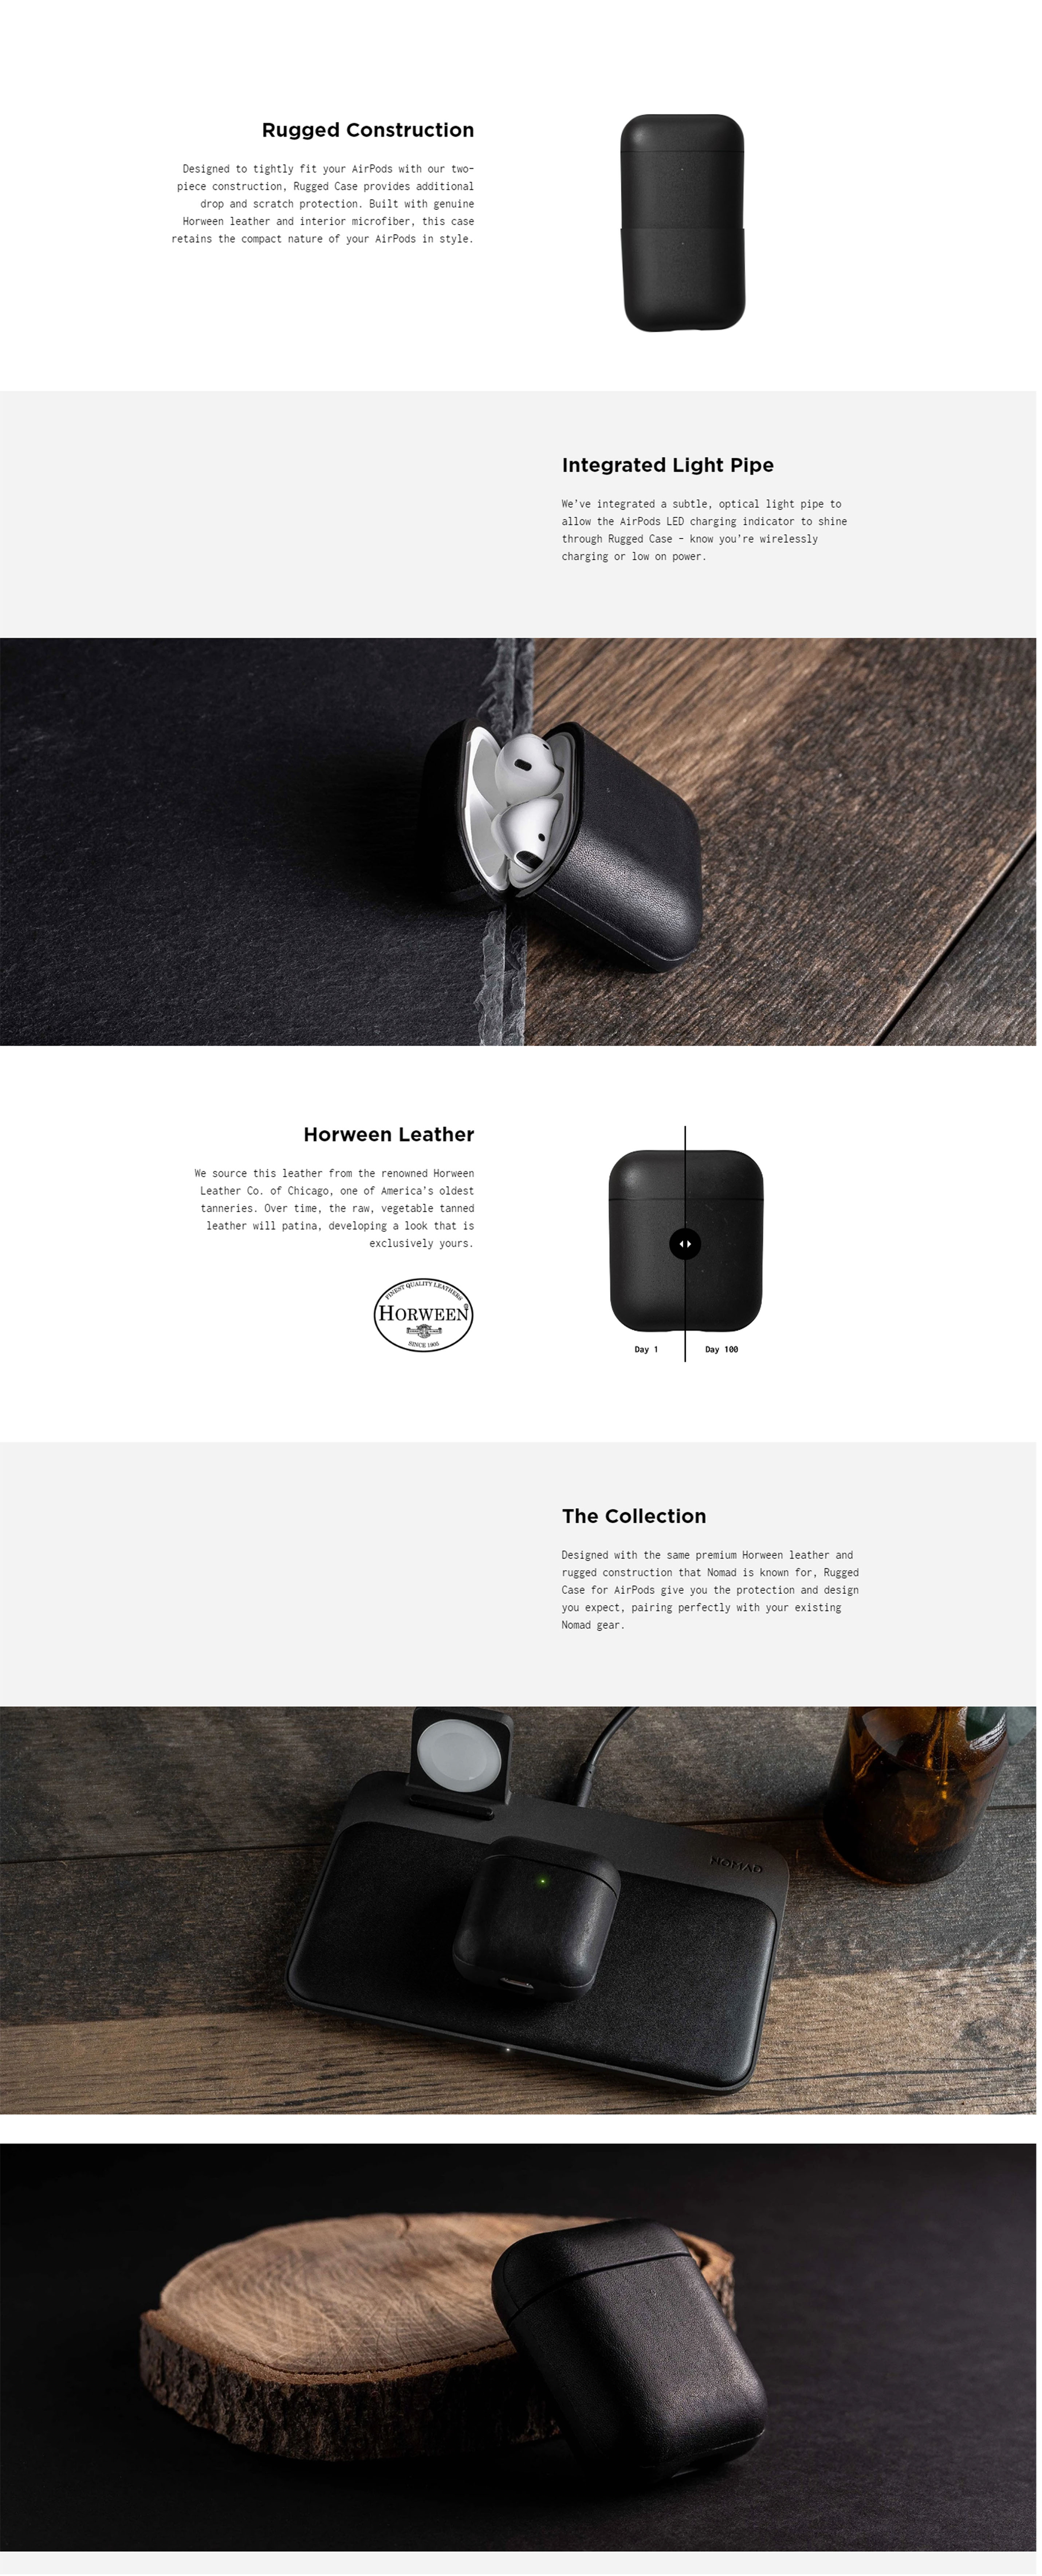 nomad/856504015749/1-des-fx-nomad-rugged-case-airpods-wireless-charging-case-airpods-1-and-2-compatible-black-color-856504015749-malaysia-authorised-retailer